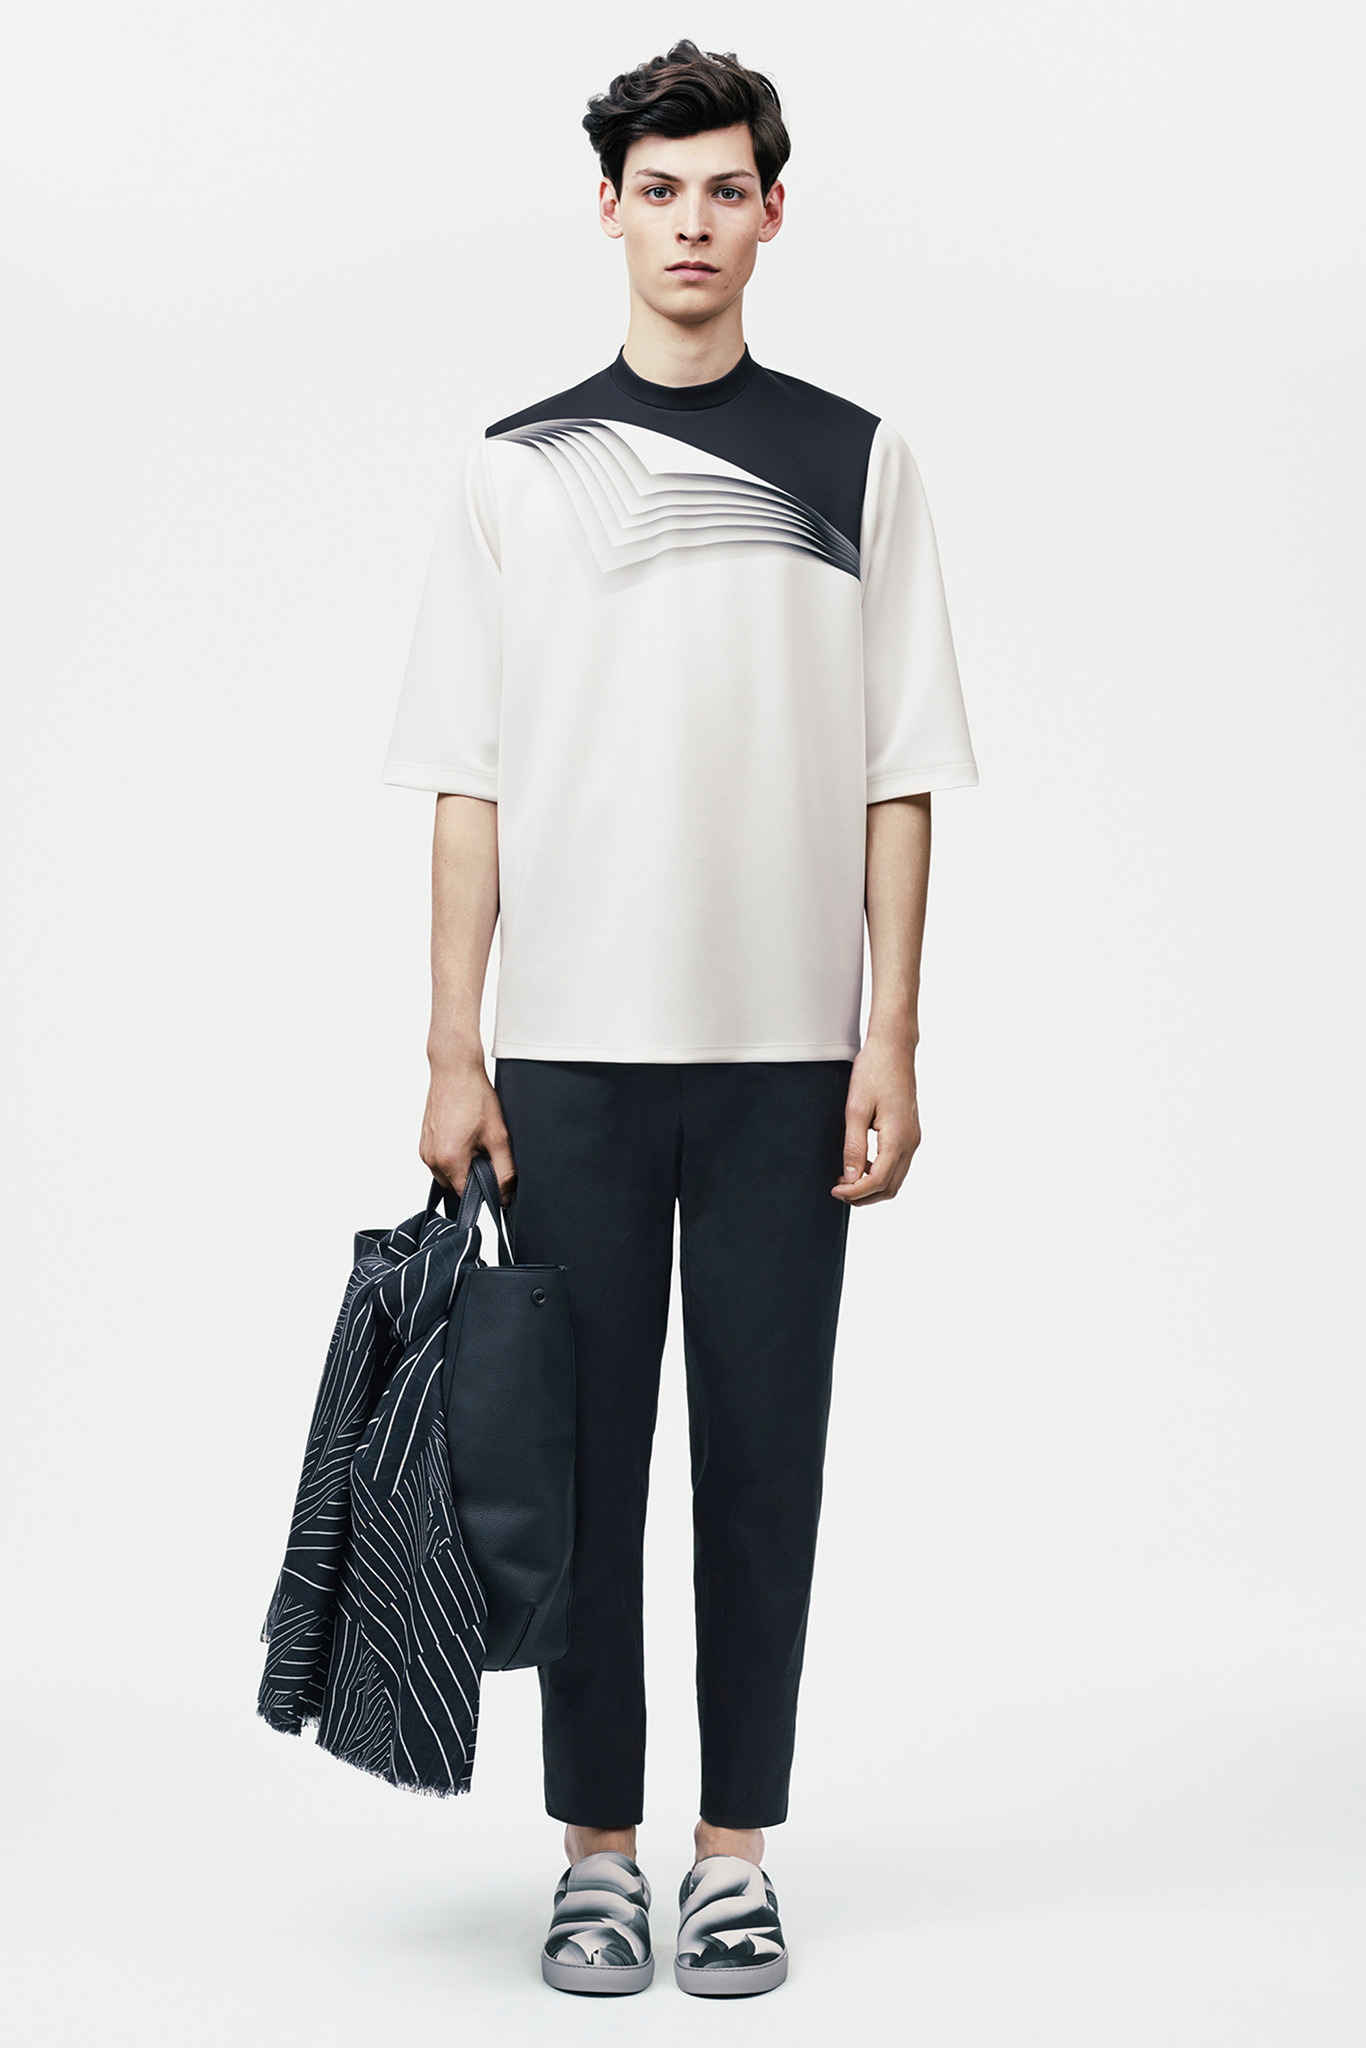 CHRISTOPHER KANE : 2015 S/S COLLECTION – Chasseur Magazine